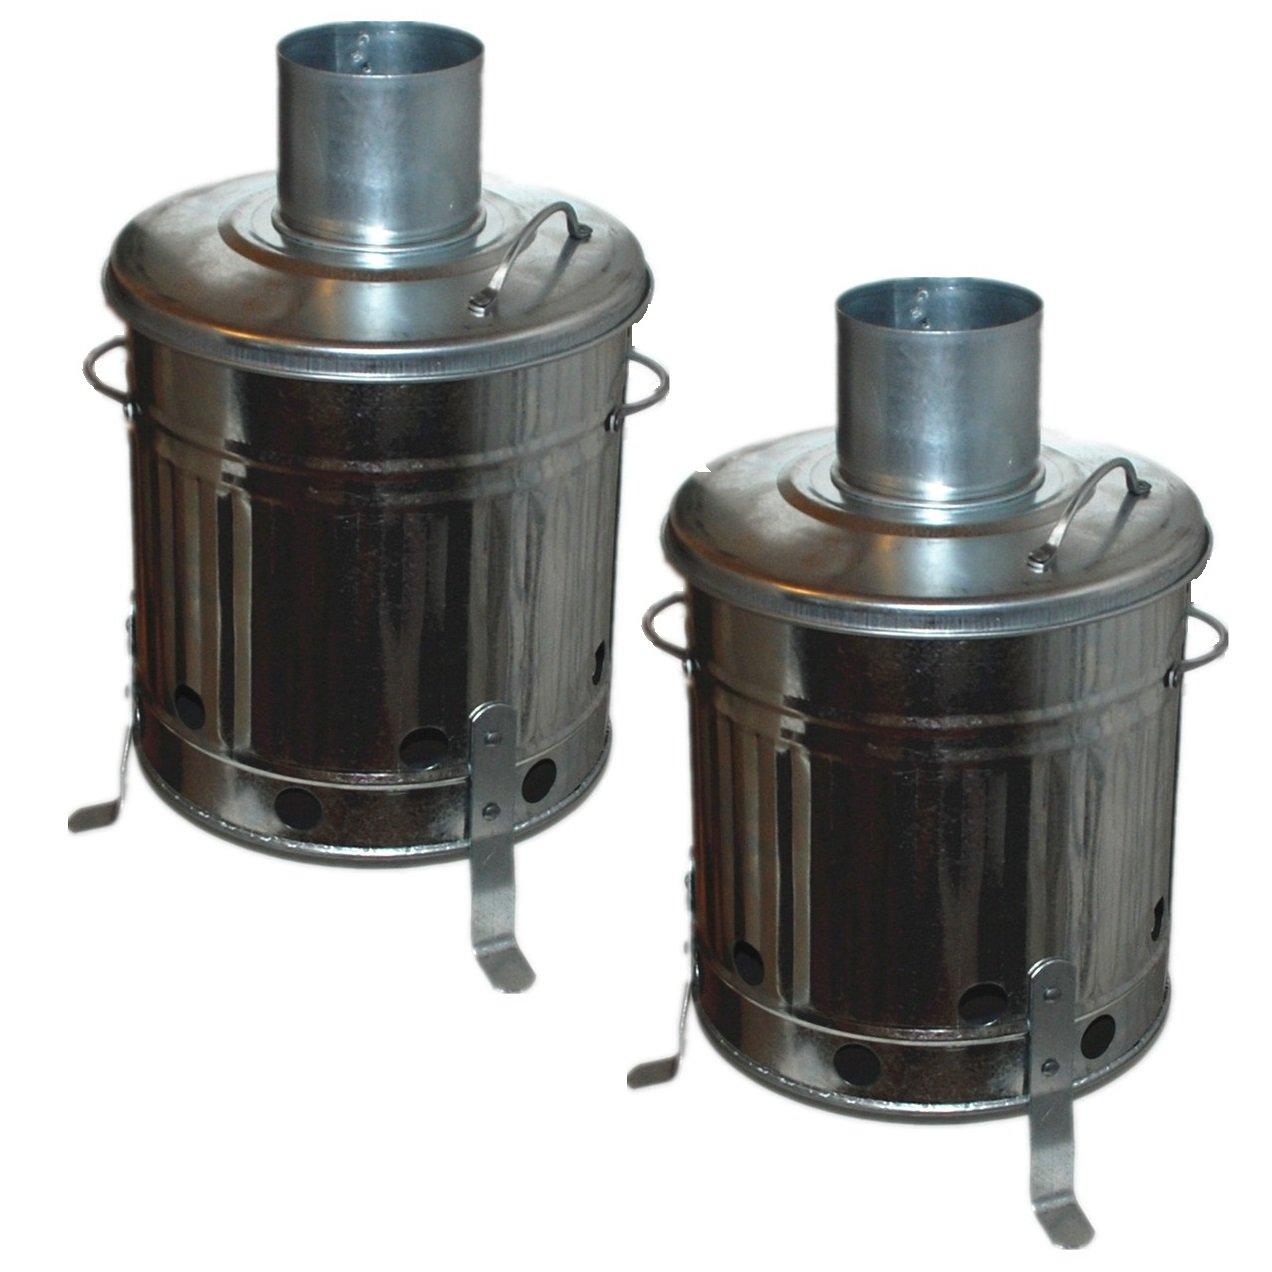 2 x CrazyGadget Mini Garden Incinerator Small Fire Bin Galvanised 15 Litre 15L Burning Wood Leaves Paper